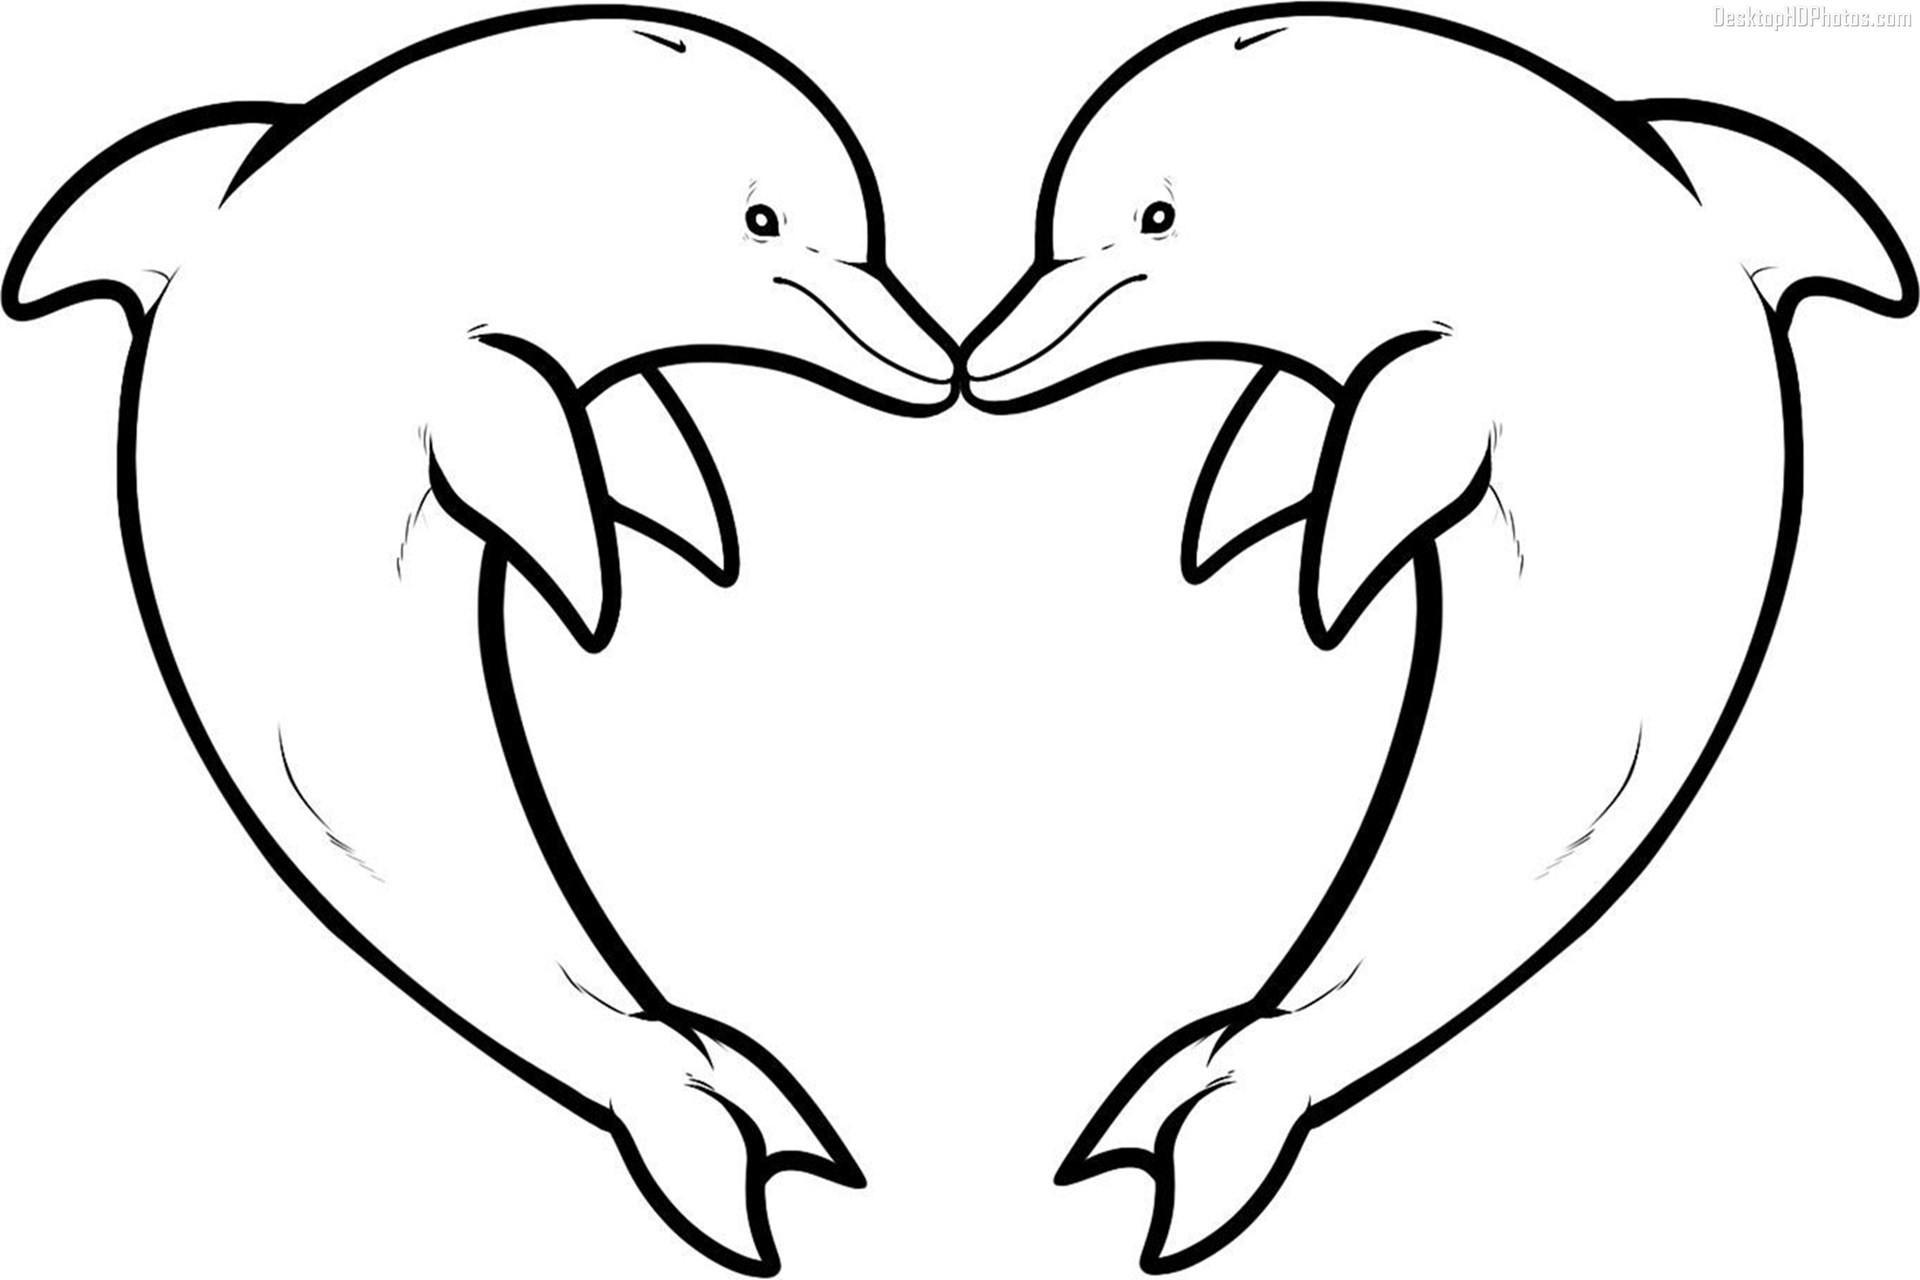 dolphin pictures to colour and print dolphins to color for children dolphins kids coloring pages print dolphin colour pictures to and